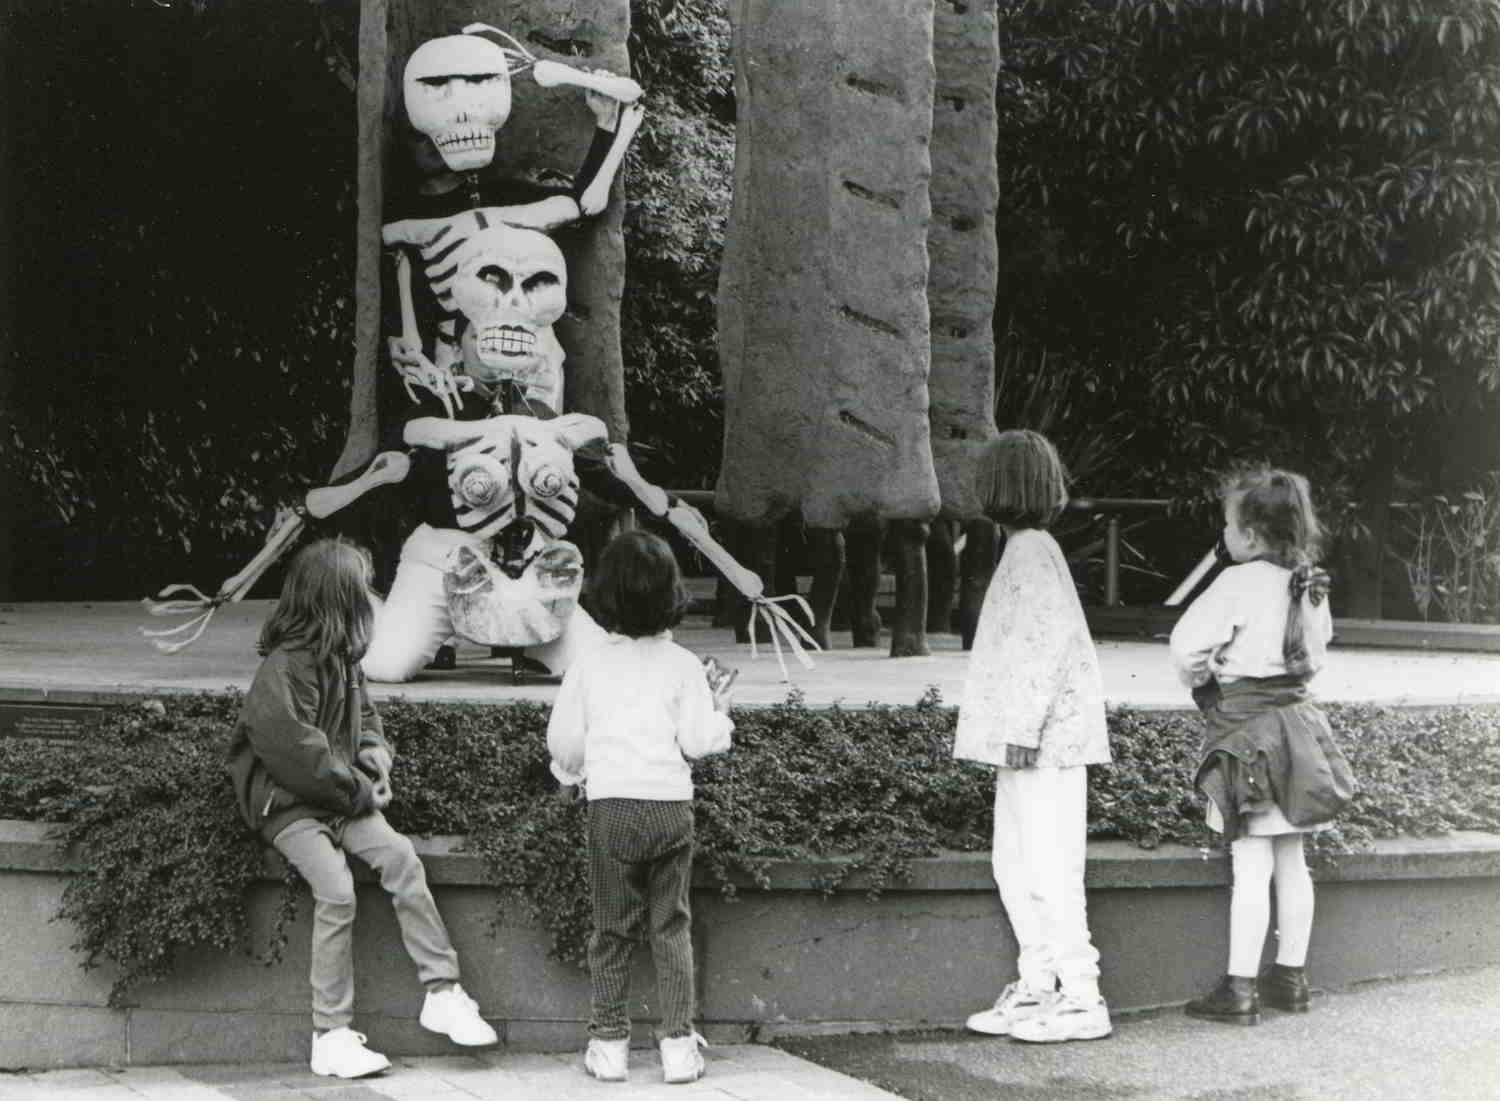 4 children looking at 2 large skeleton puppets leaning at the base of a stone plinth